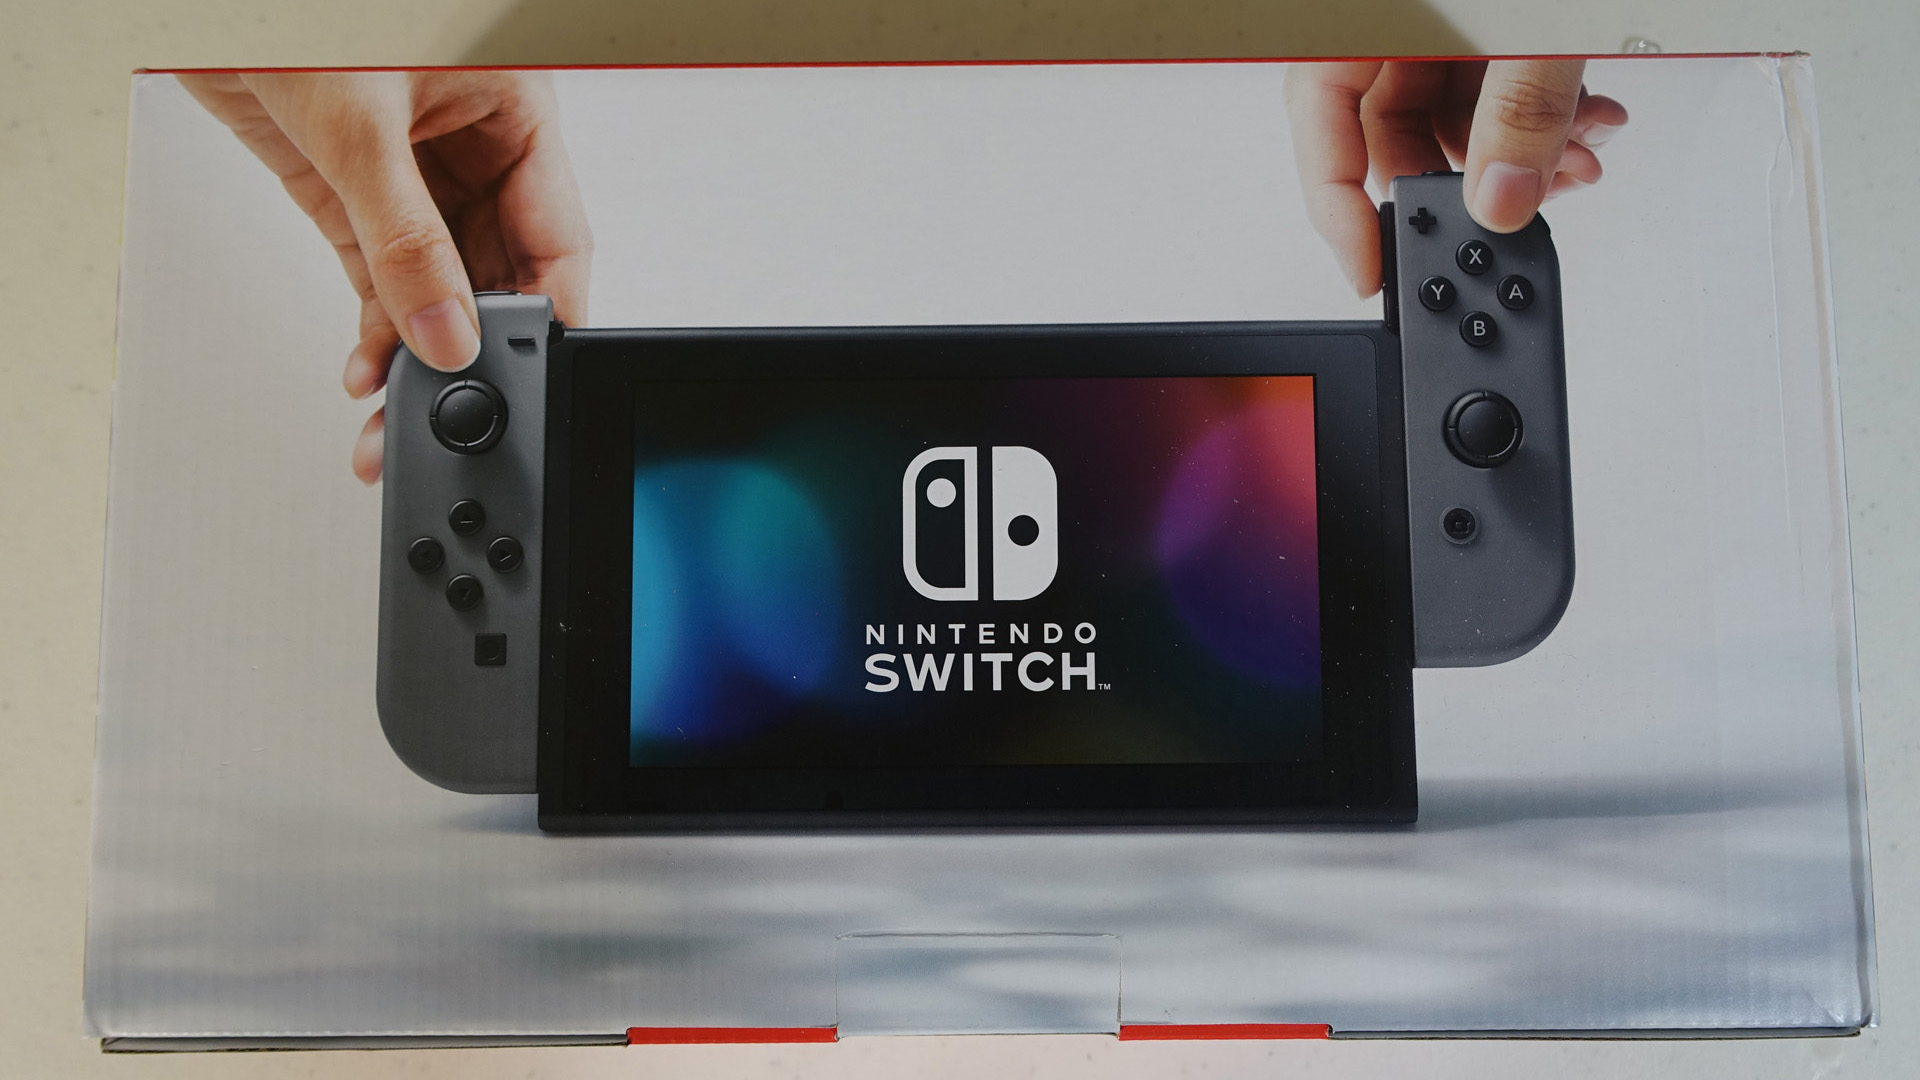 nintendo switch preview a visual walkthrough of nintendo 39 s newest console usgamer. Black Bedroom Furniture Sets. Home Design Ideas